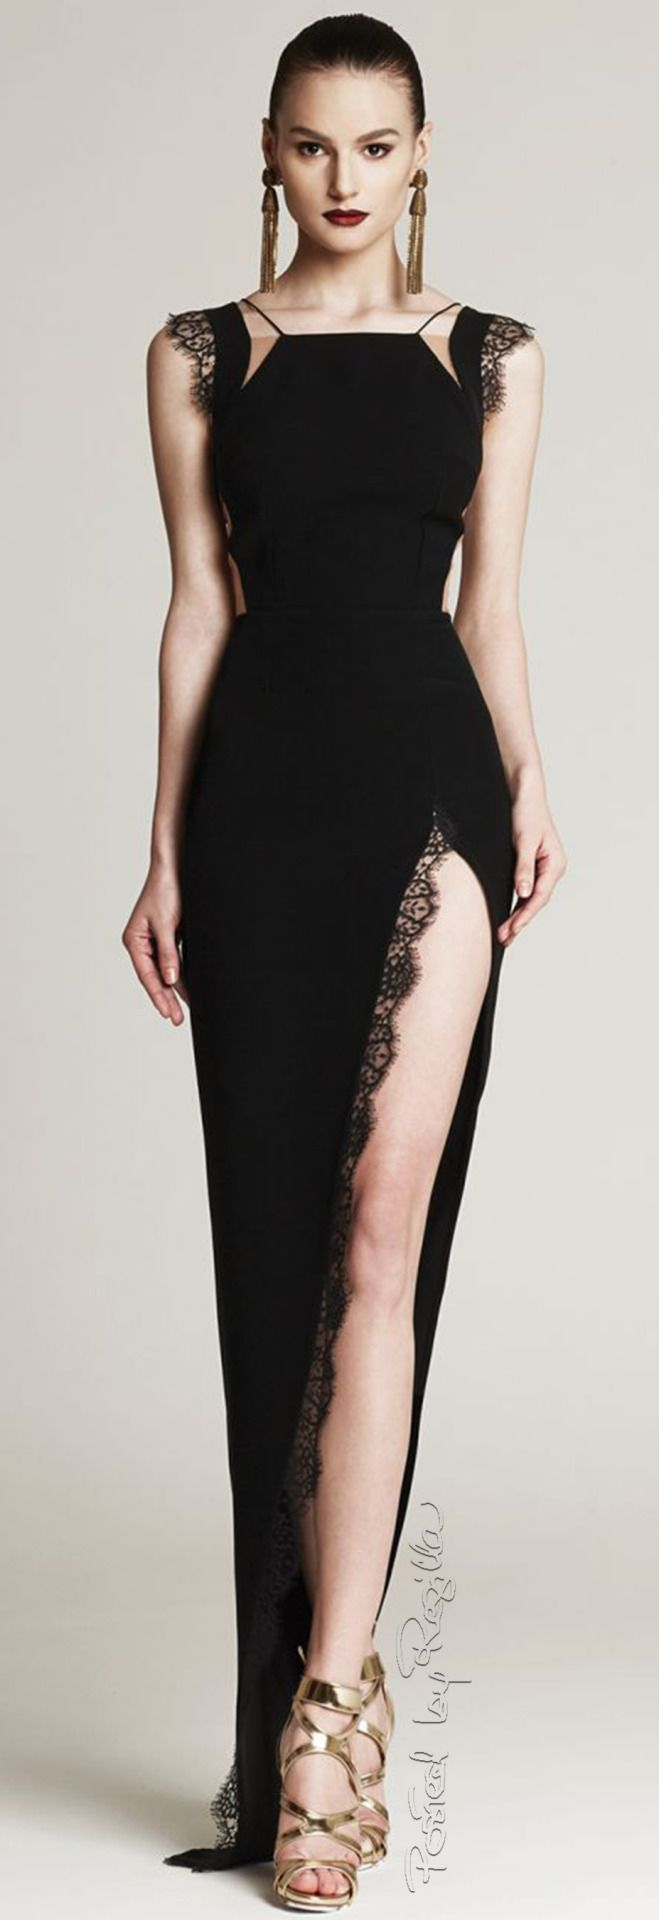 Lace dress in black august 2019  best Dress prom images on Pinterest  Ball gown Cute dresses